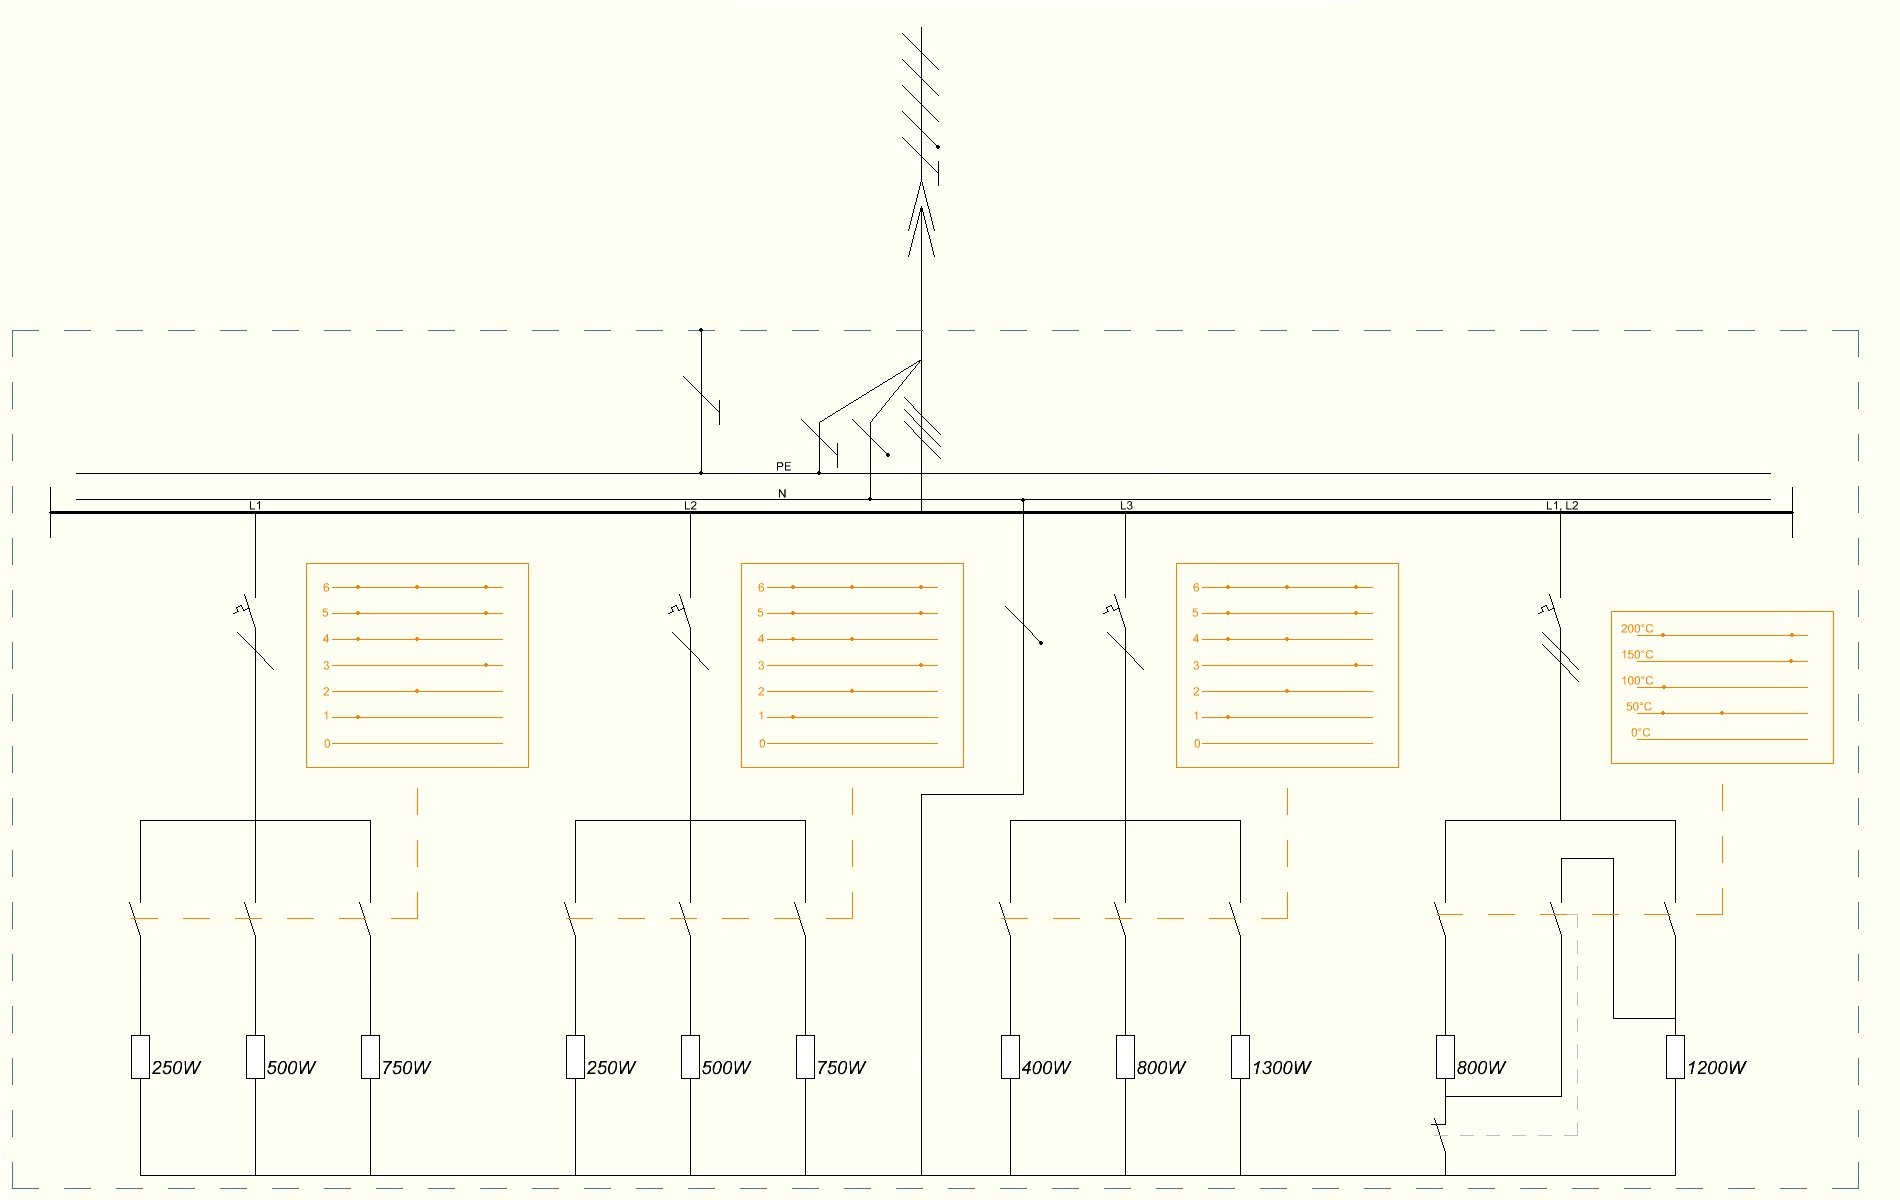 file schematic wiring diagram of electrical stove jpg wikimedia rh commons wikimedia org GE Range Wiring Schematic Range Wiring Diagram